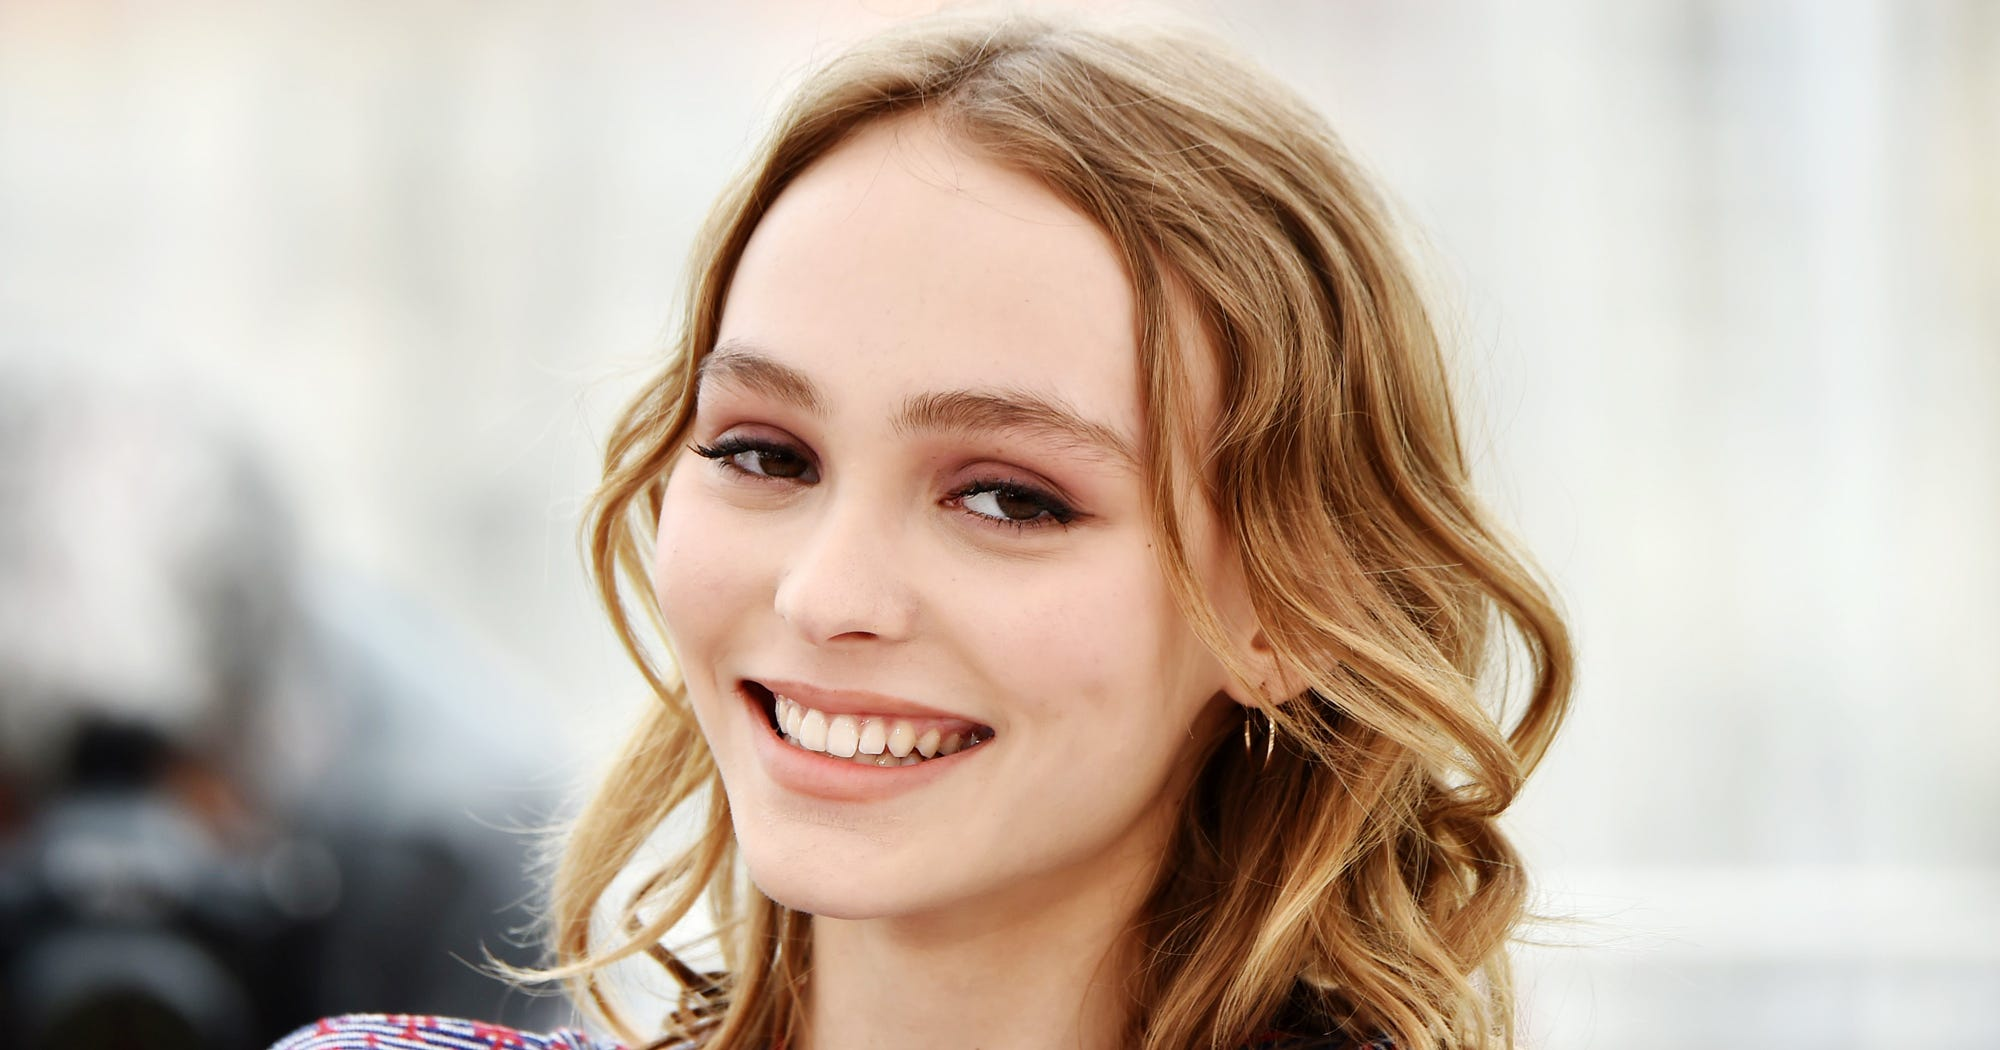 Lily-Rose Depp Chanel No 5 New Face